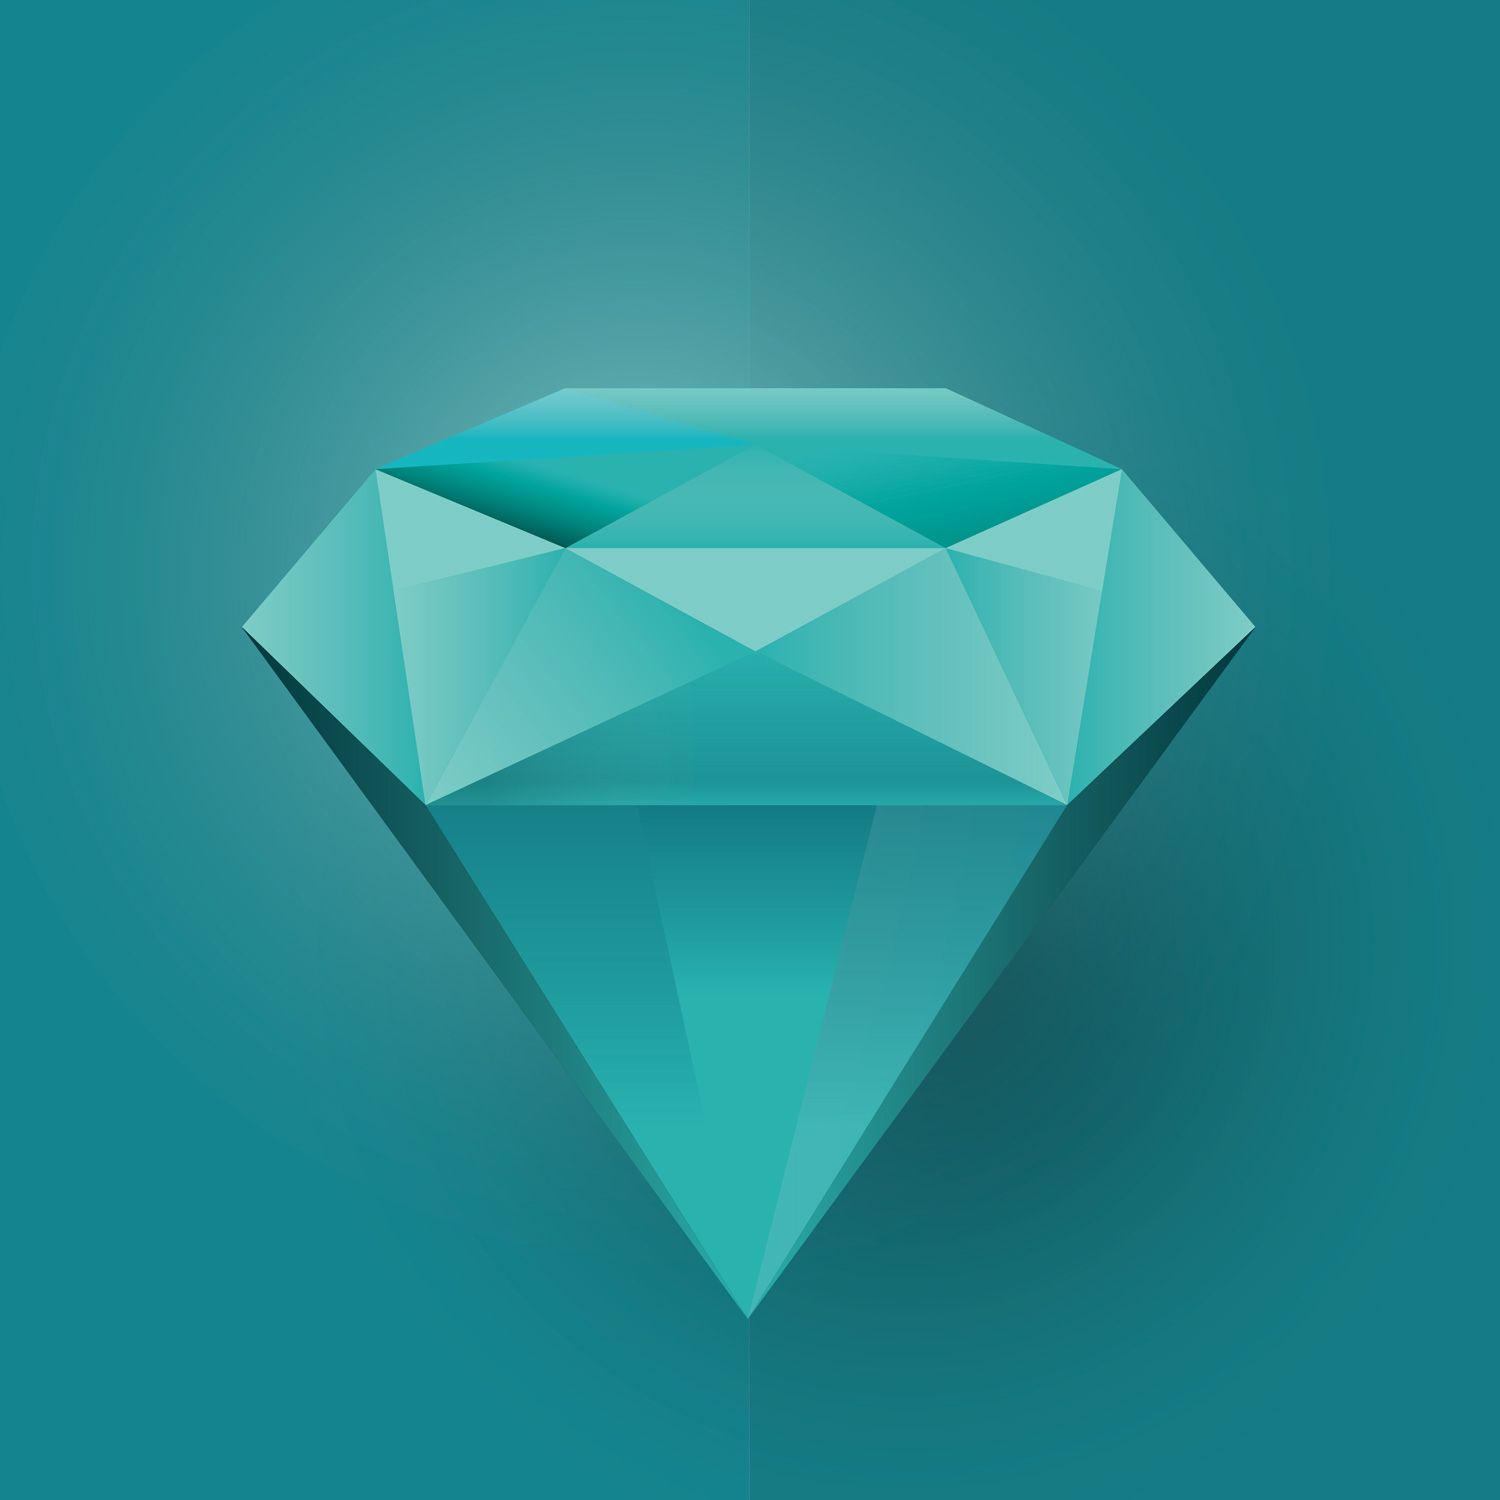 Poster A3 A4 Illustration of a blue diamond